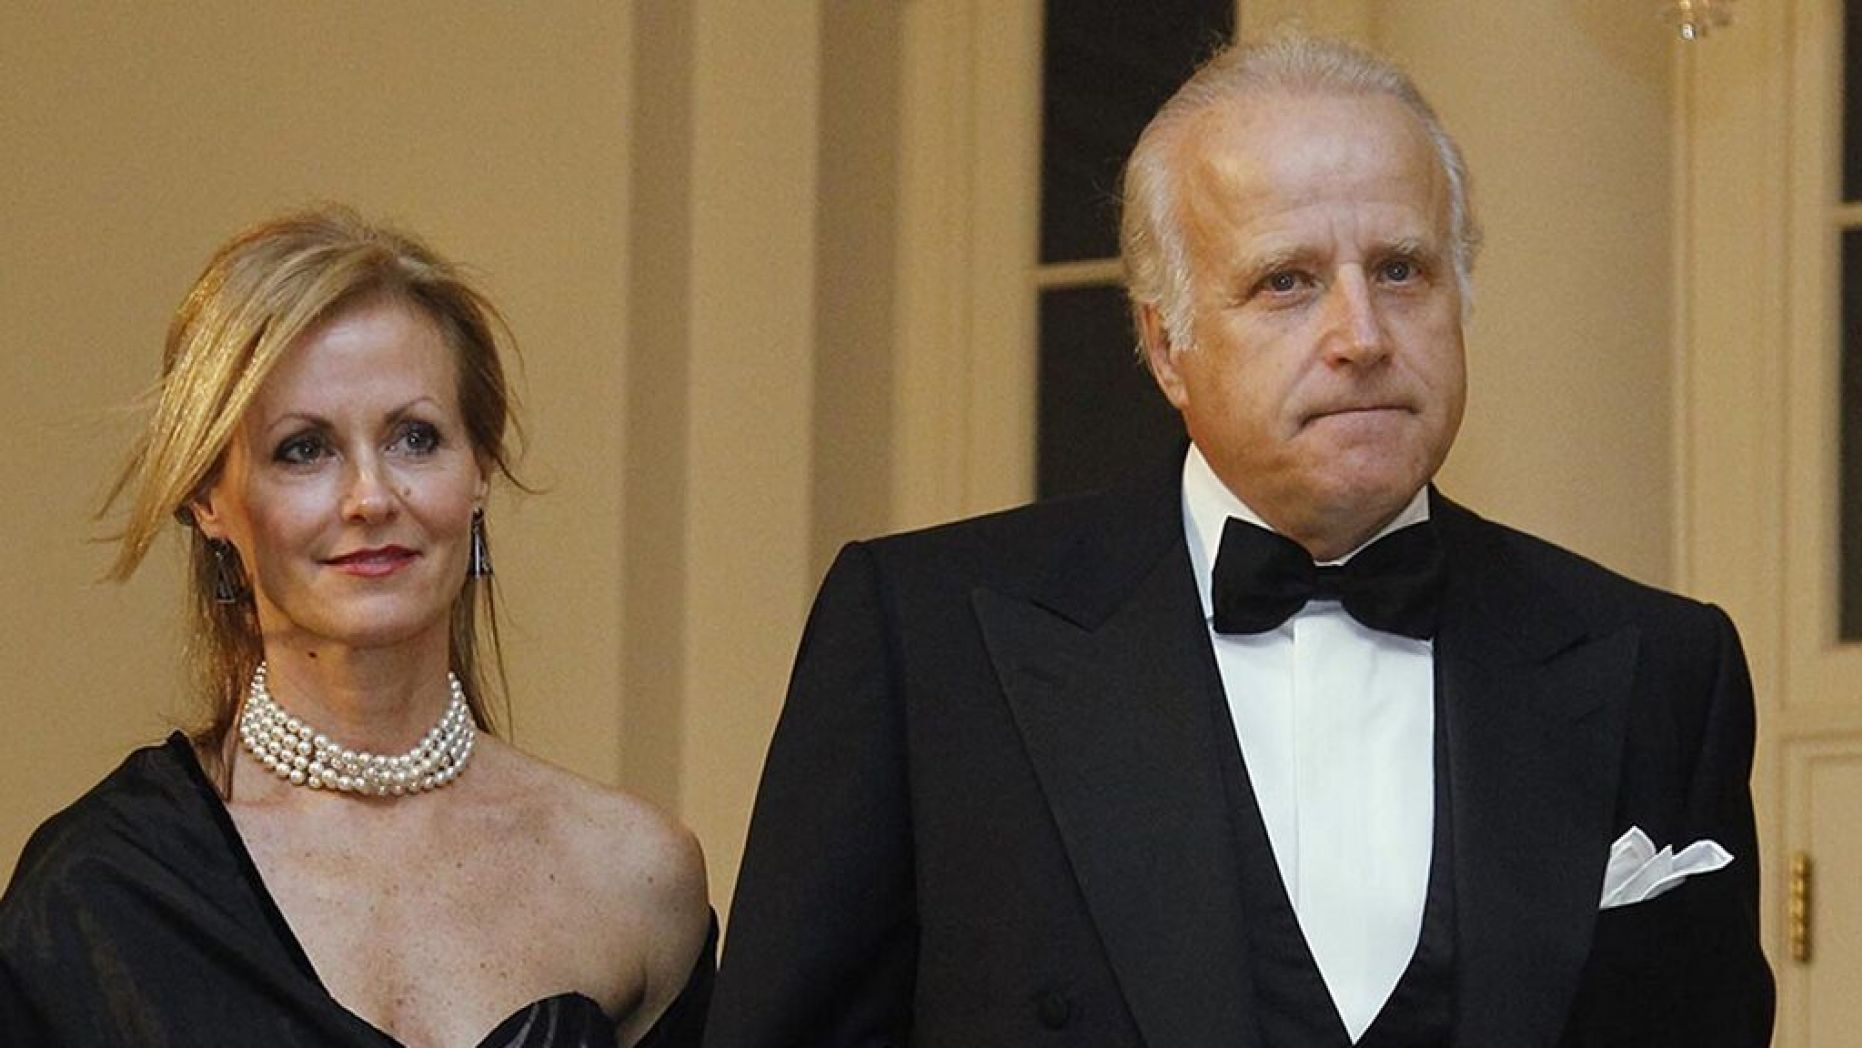 James and Sara Biden arrive at the White House to attend the State Dinner for South Korea, Oct. 13, 2011, in Washington.